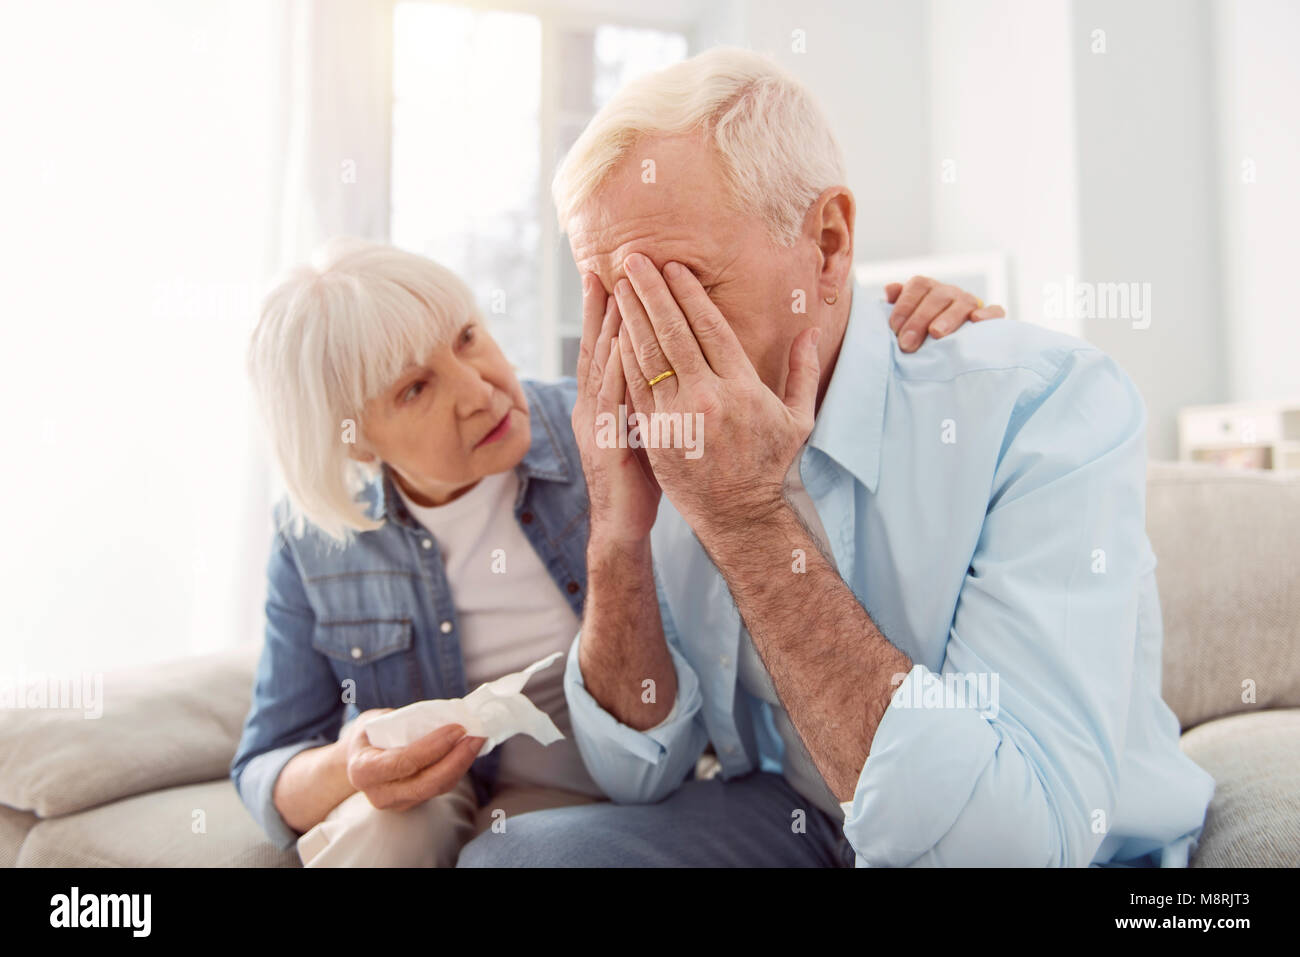 Loving wife consoling her sobbing husband - Stock Image